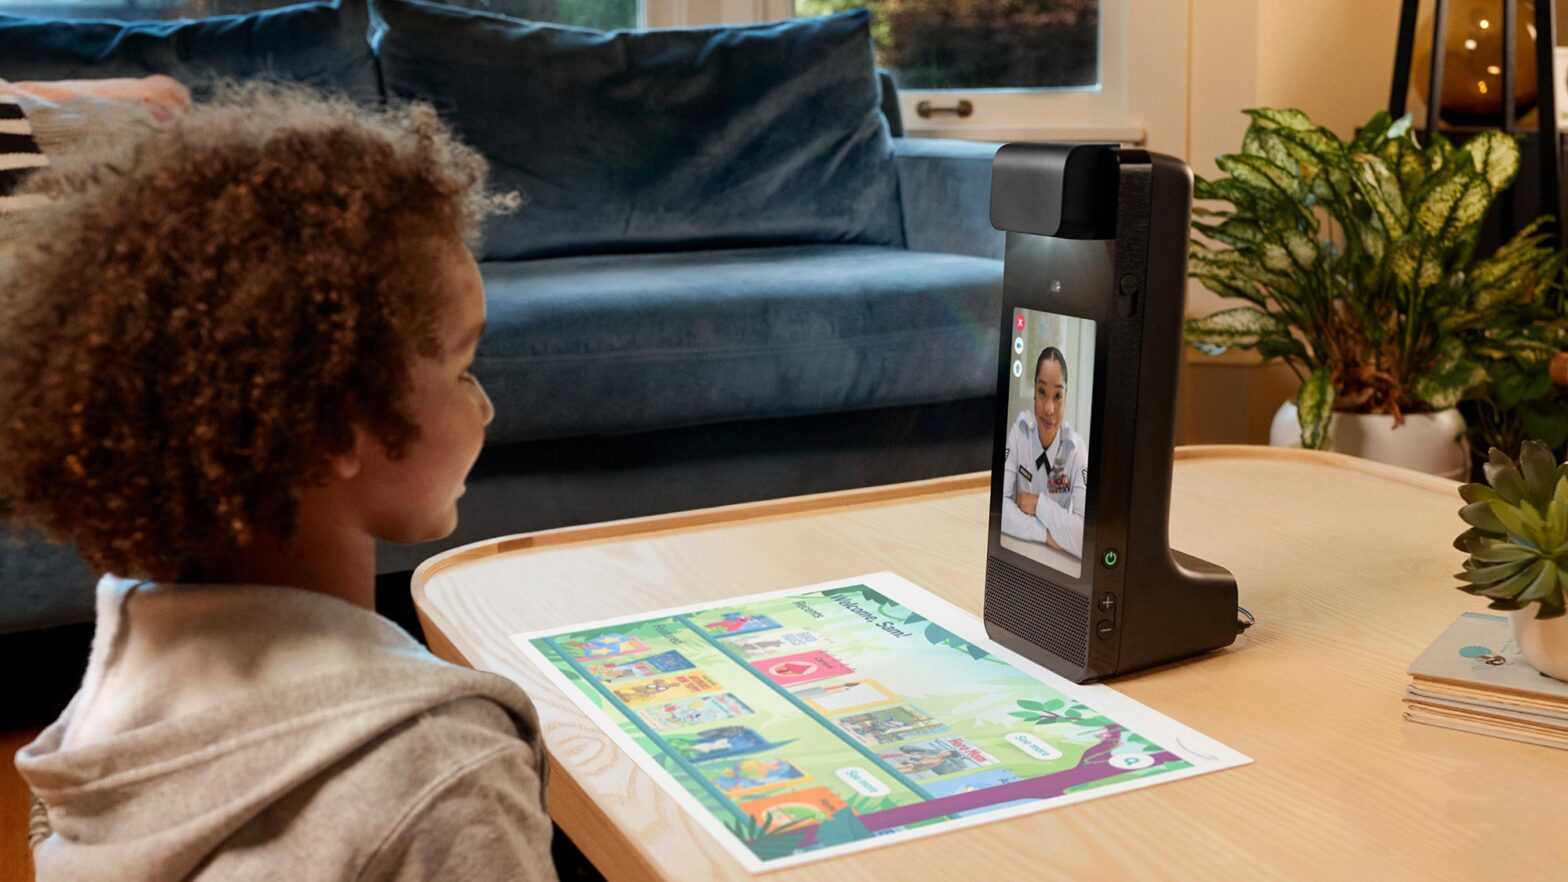 Amazon Glow Interactive Projector with Video Call